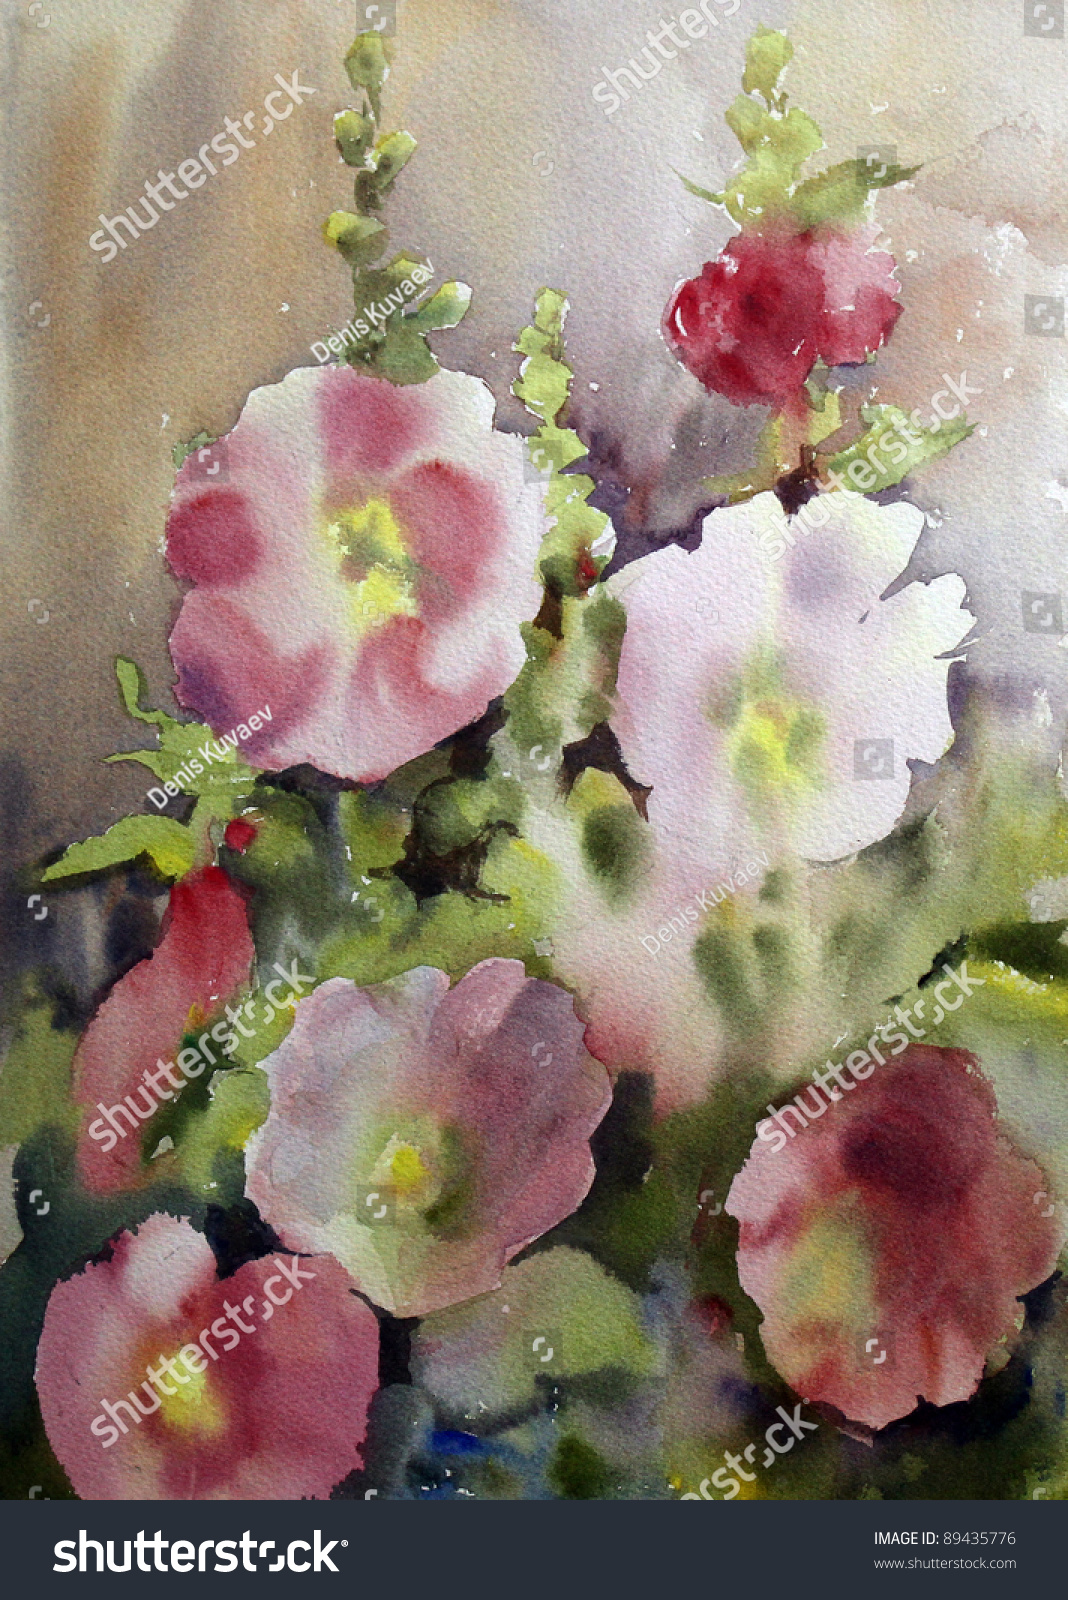 Watercolor painting beautiful flowers mallow stock illustration watercolor painting of the beautiful flowers mallow izmirmasajfo Image collections